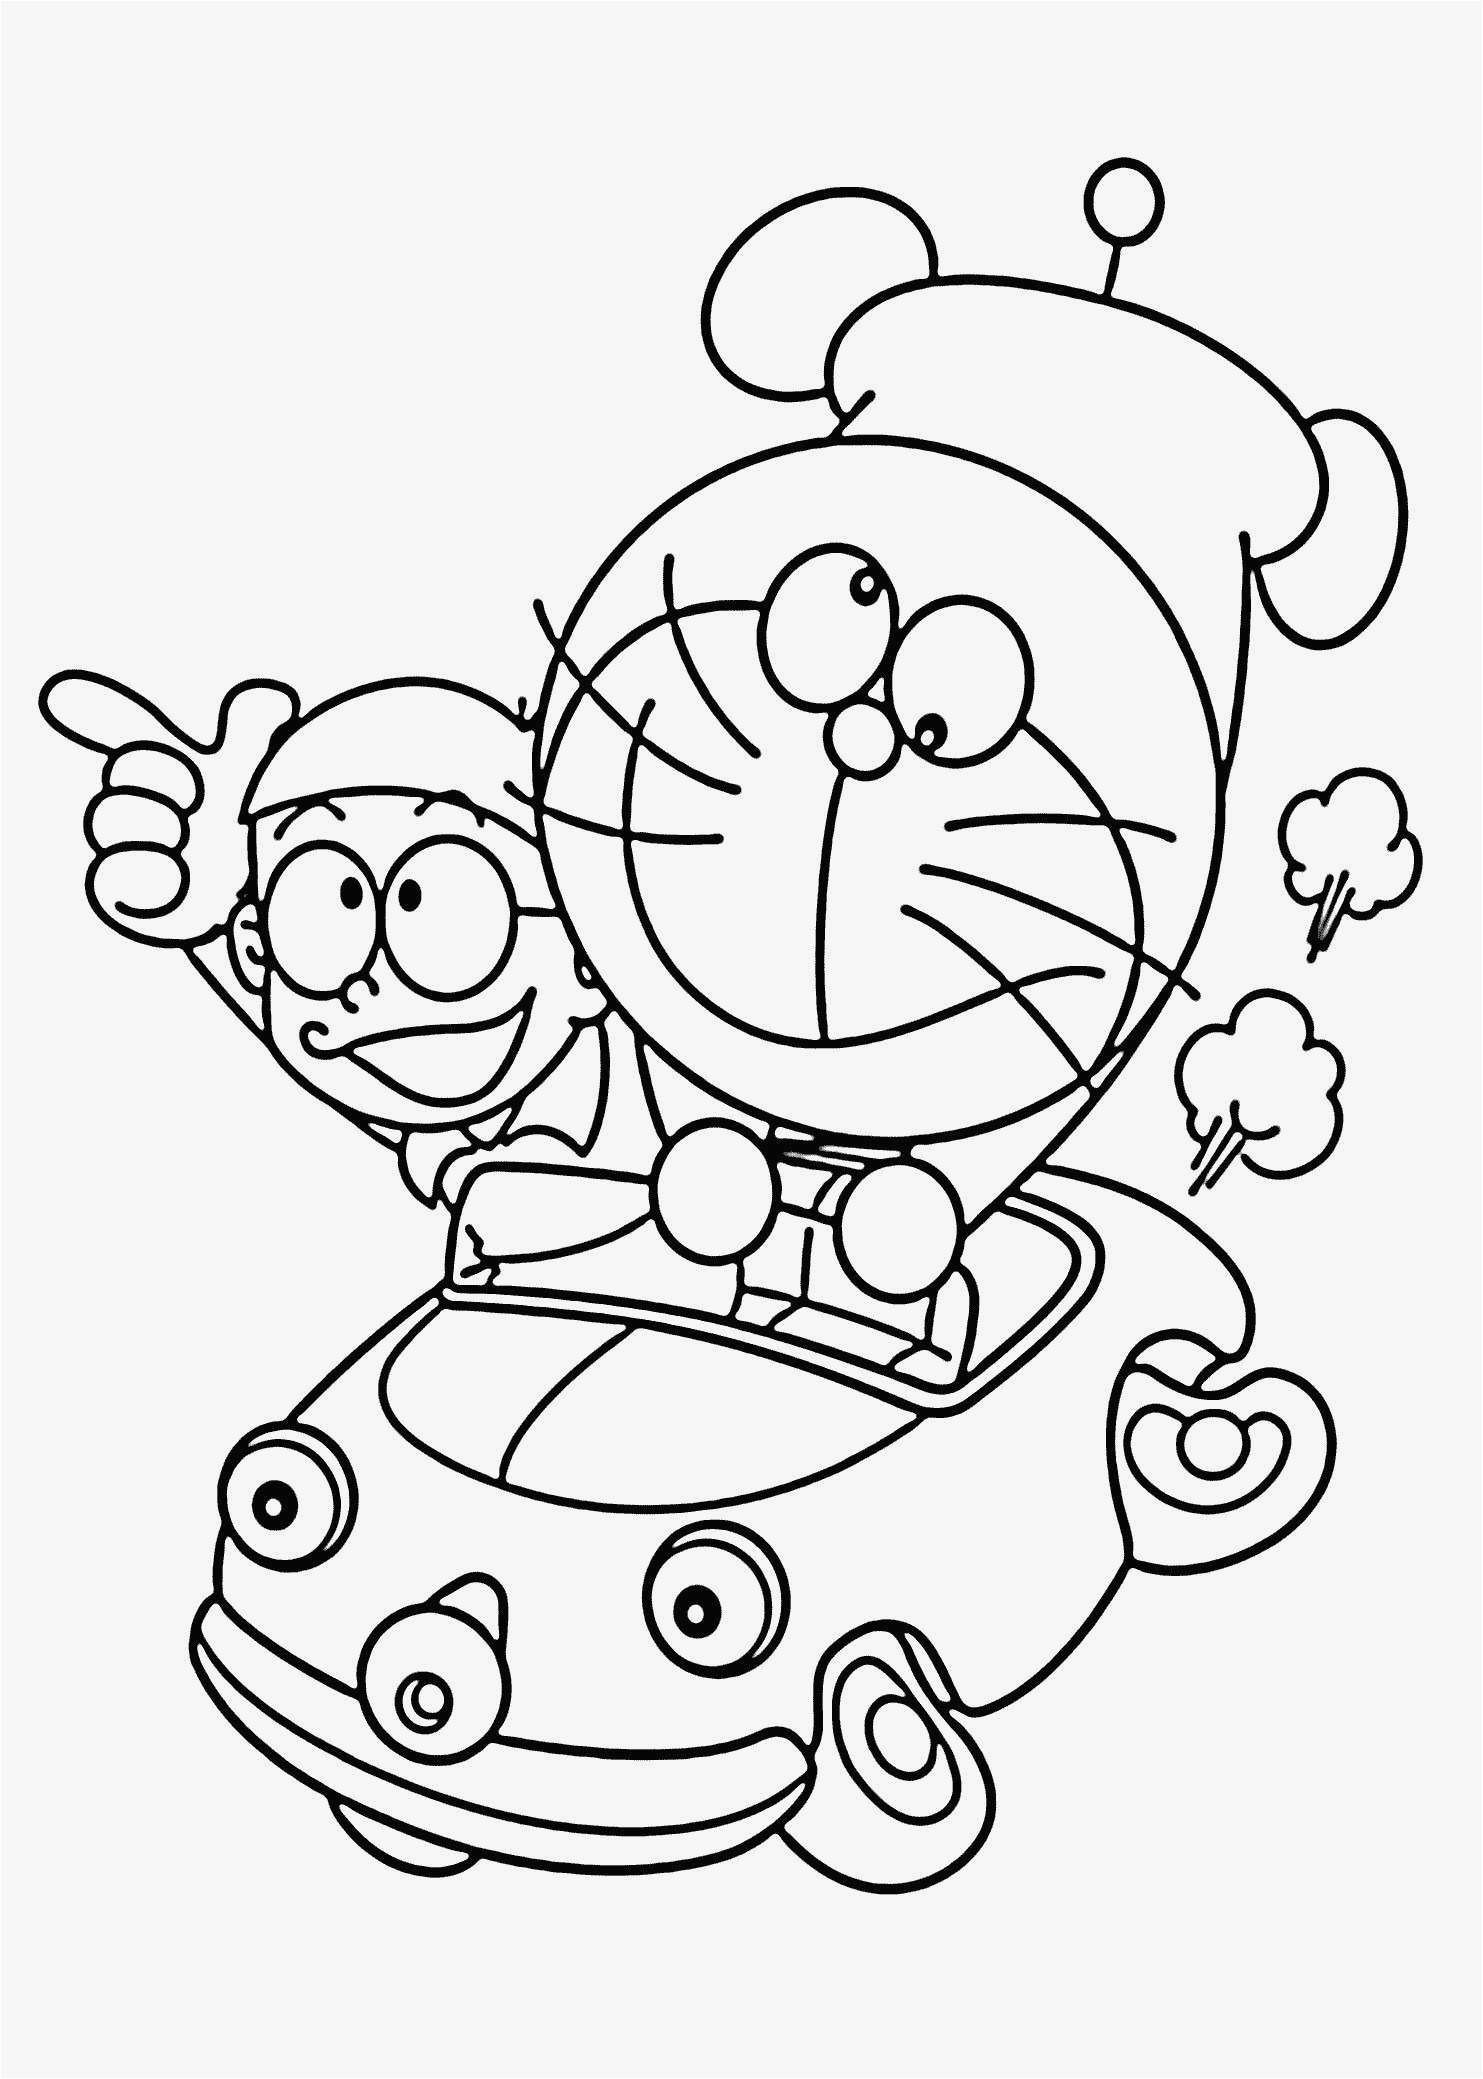 Christmas Coloring Pages Online With Sample You Can Color Line